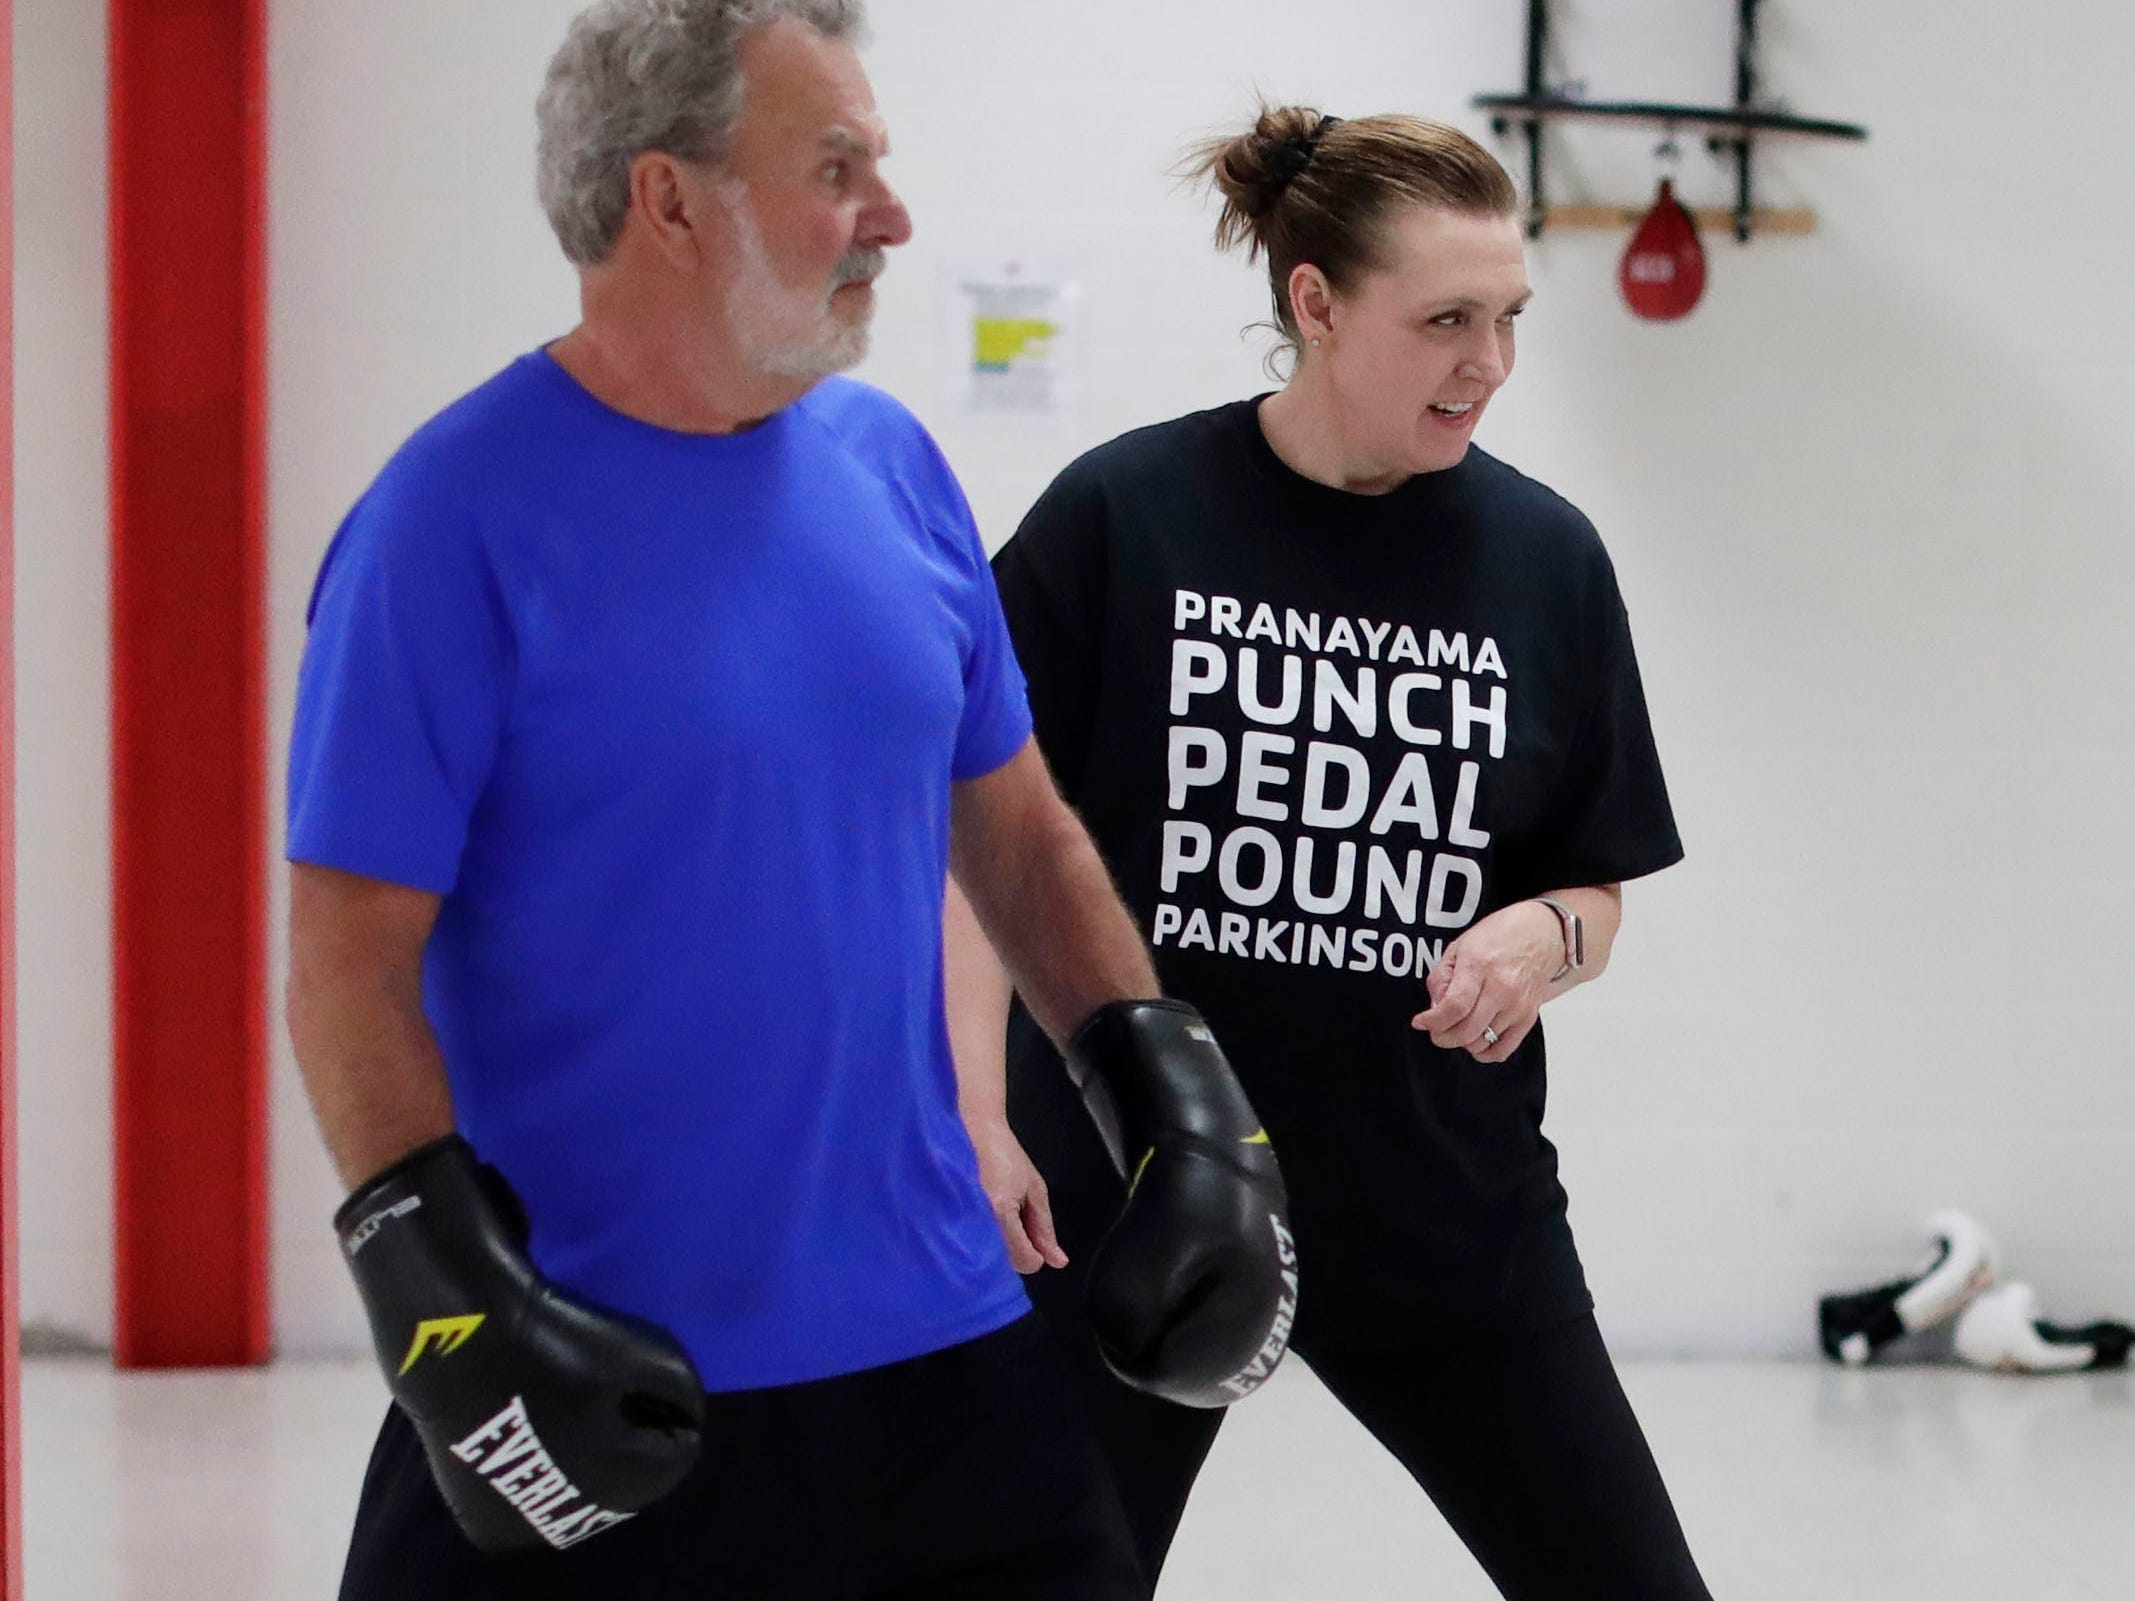 Larry Boll, left, and instructor Jana Adams get in some step action during the Fighting Parkinson's class, Tuesday, March 21, 2019, in Sheboygan, Wis.